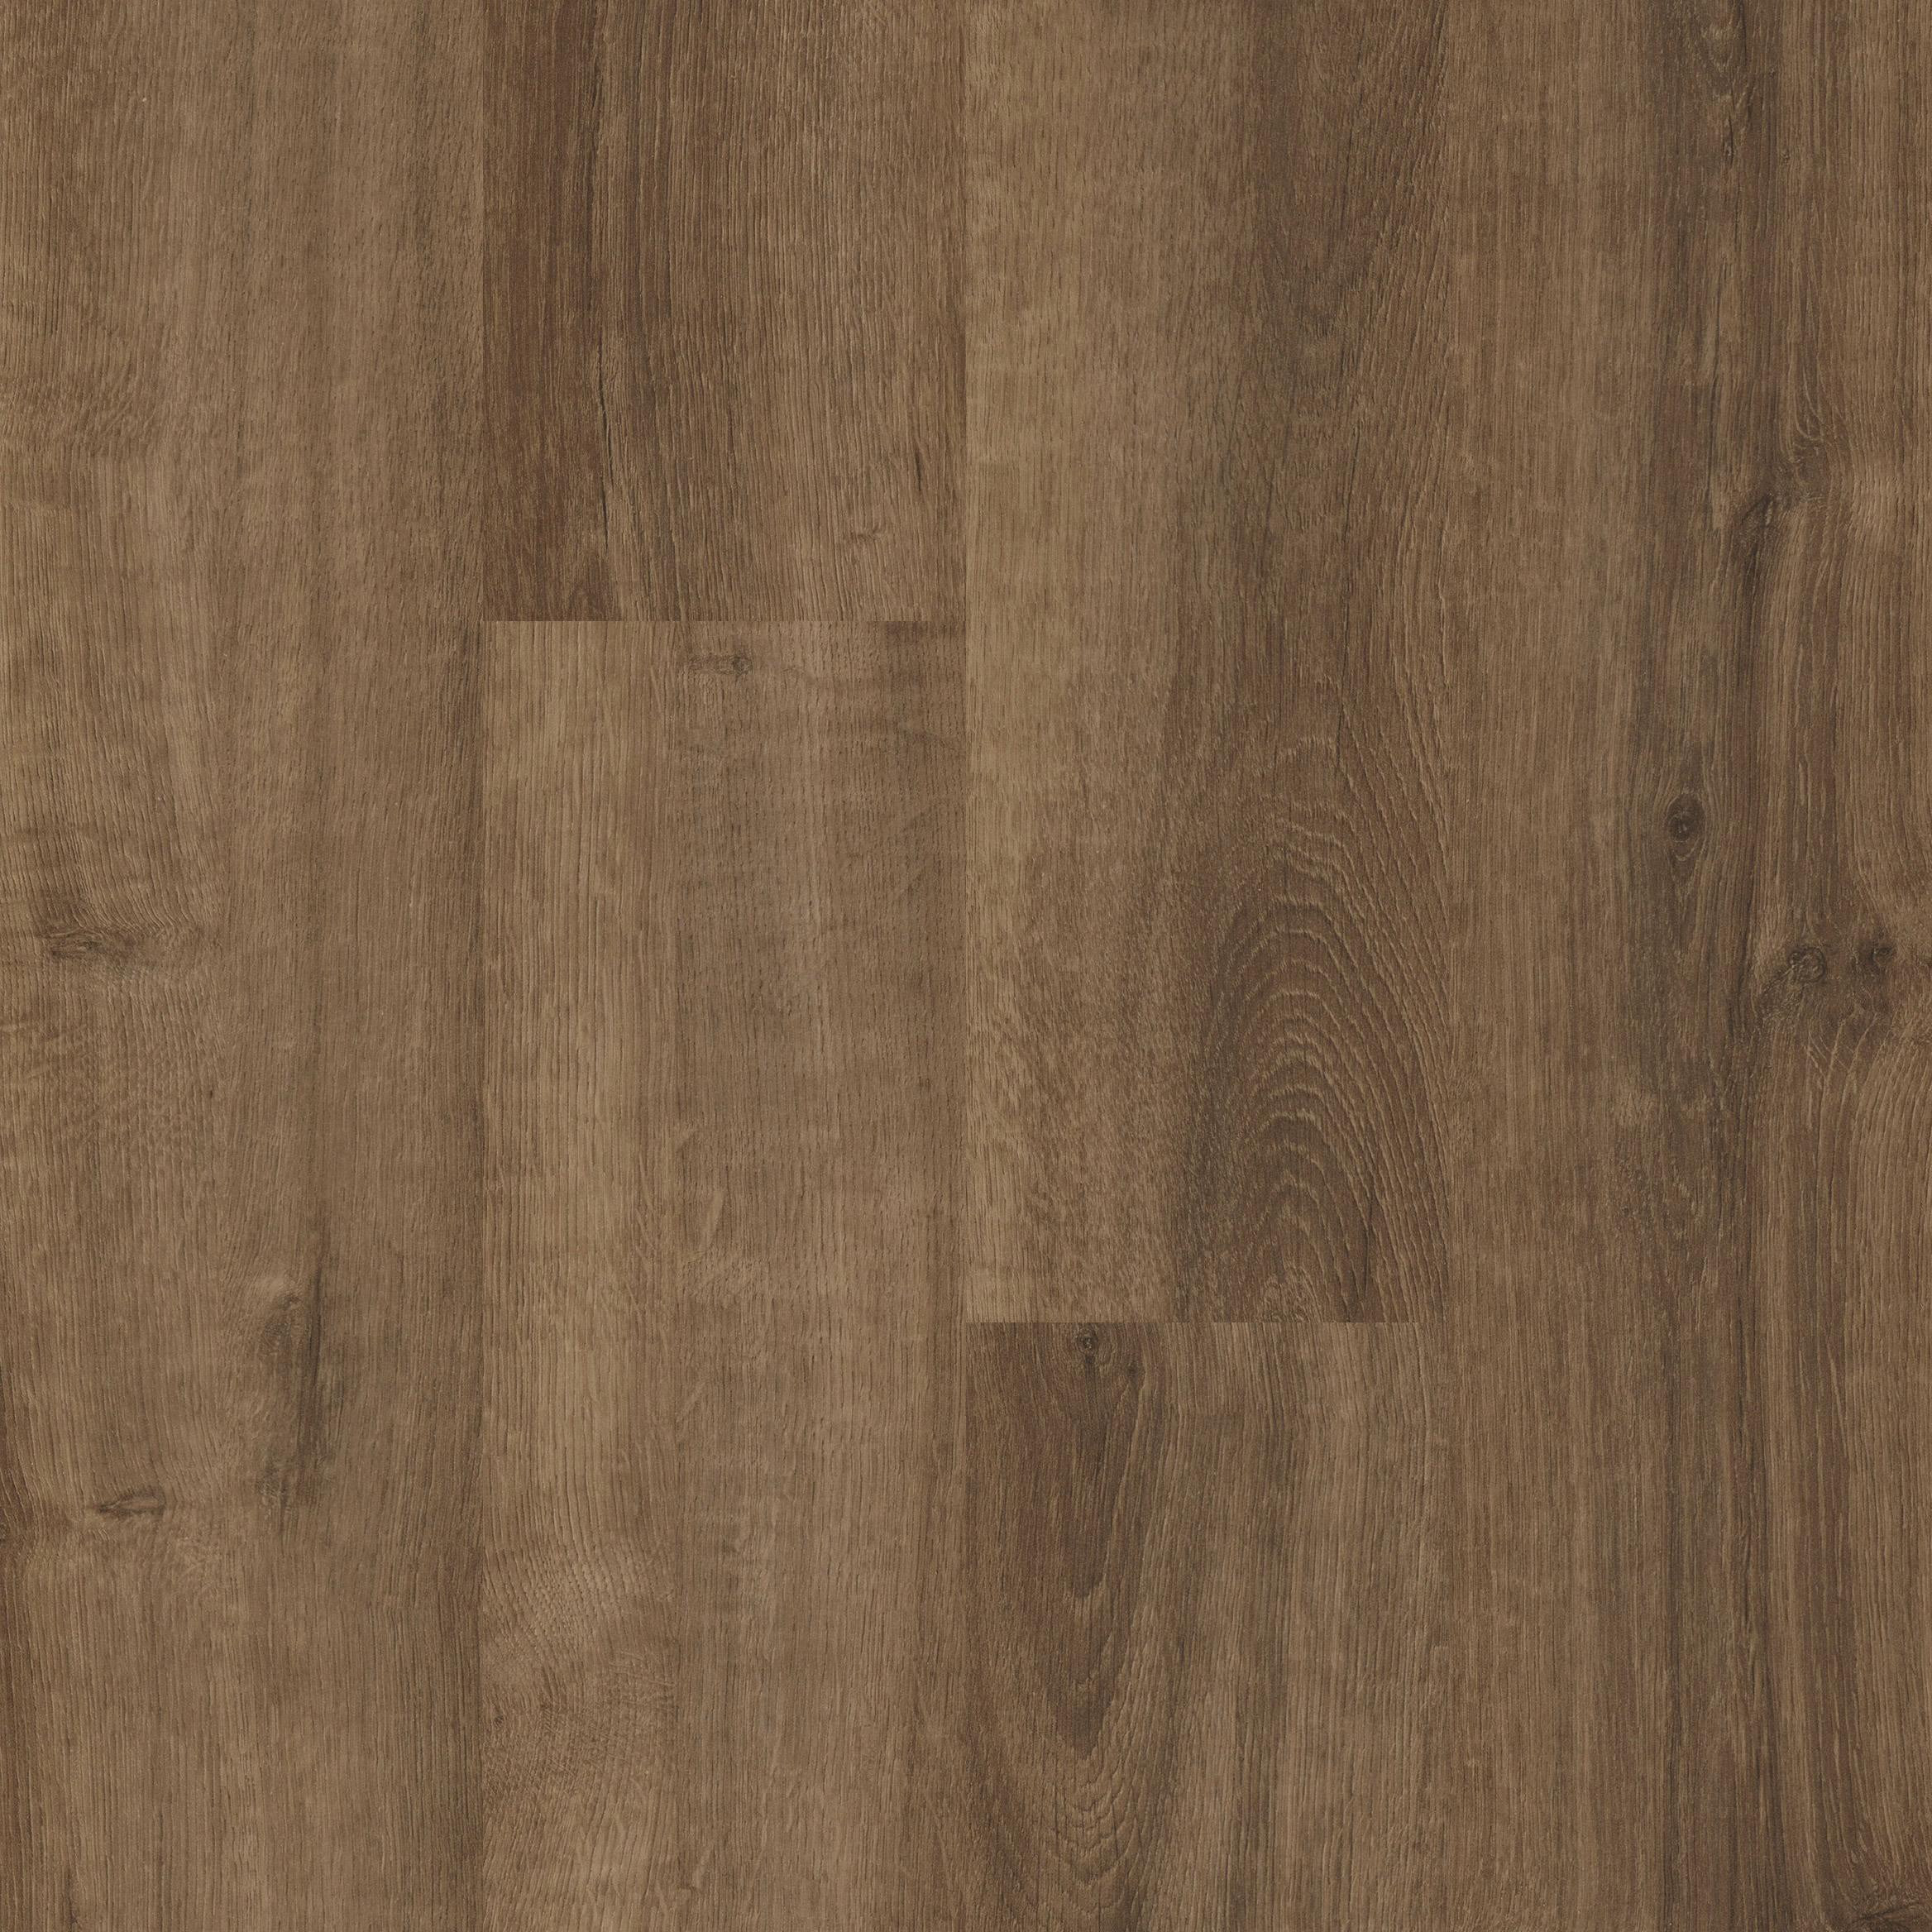 vinyl plank flooring vs engineered hardwood of ivc moduleo horizon distressed stagecoach hickory 6 waterproof throughout ivc moduleo horizon distressed stagecoach hickory 6 waterproof click together lvt vinyl plank flooring